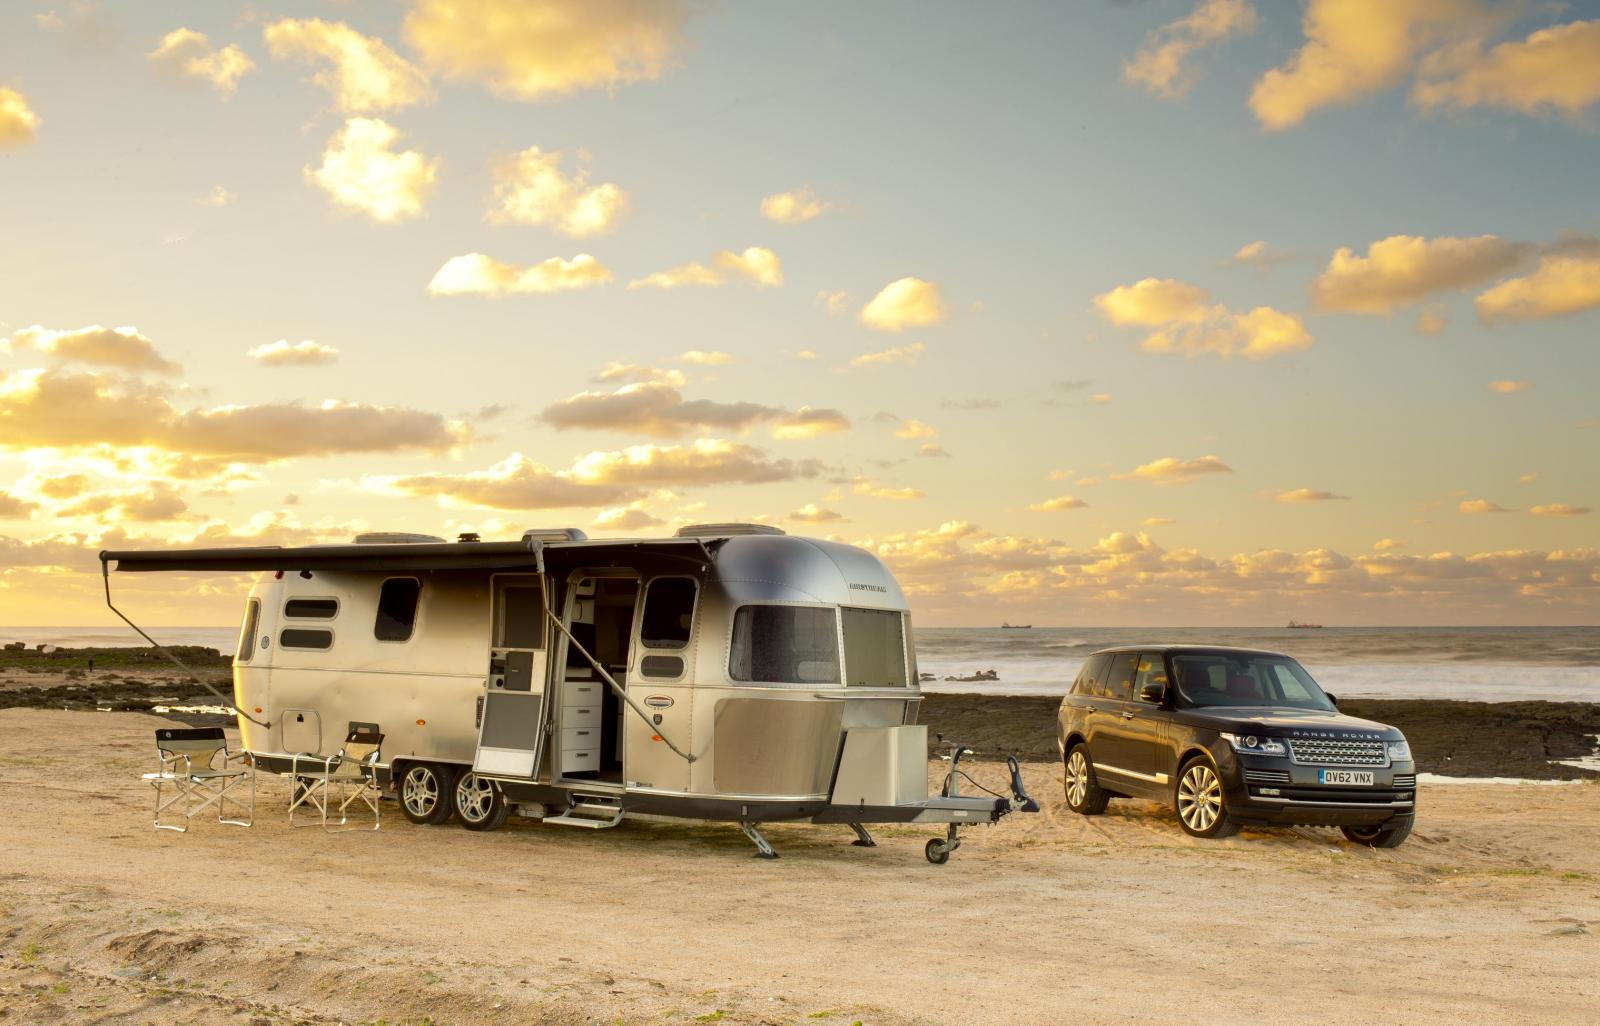 http://s1.cdn.autoevolution.com/images/news/gallery/2013-range-rover-sdv8-tows-airstream-trailer-caravan-photo-gallery_1.jpg